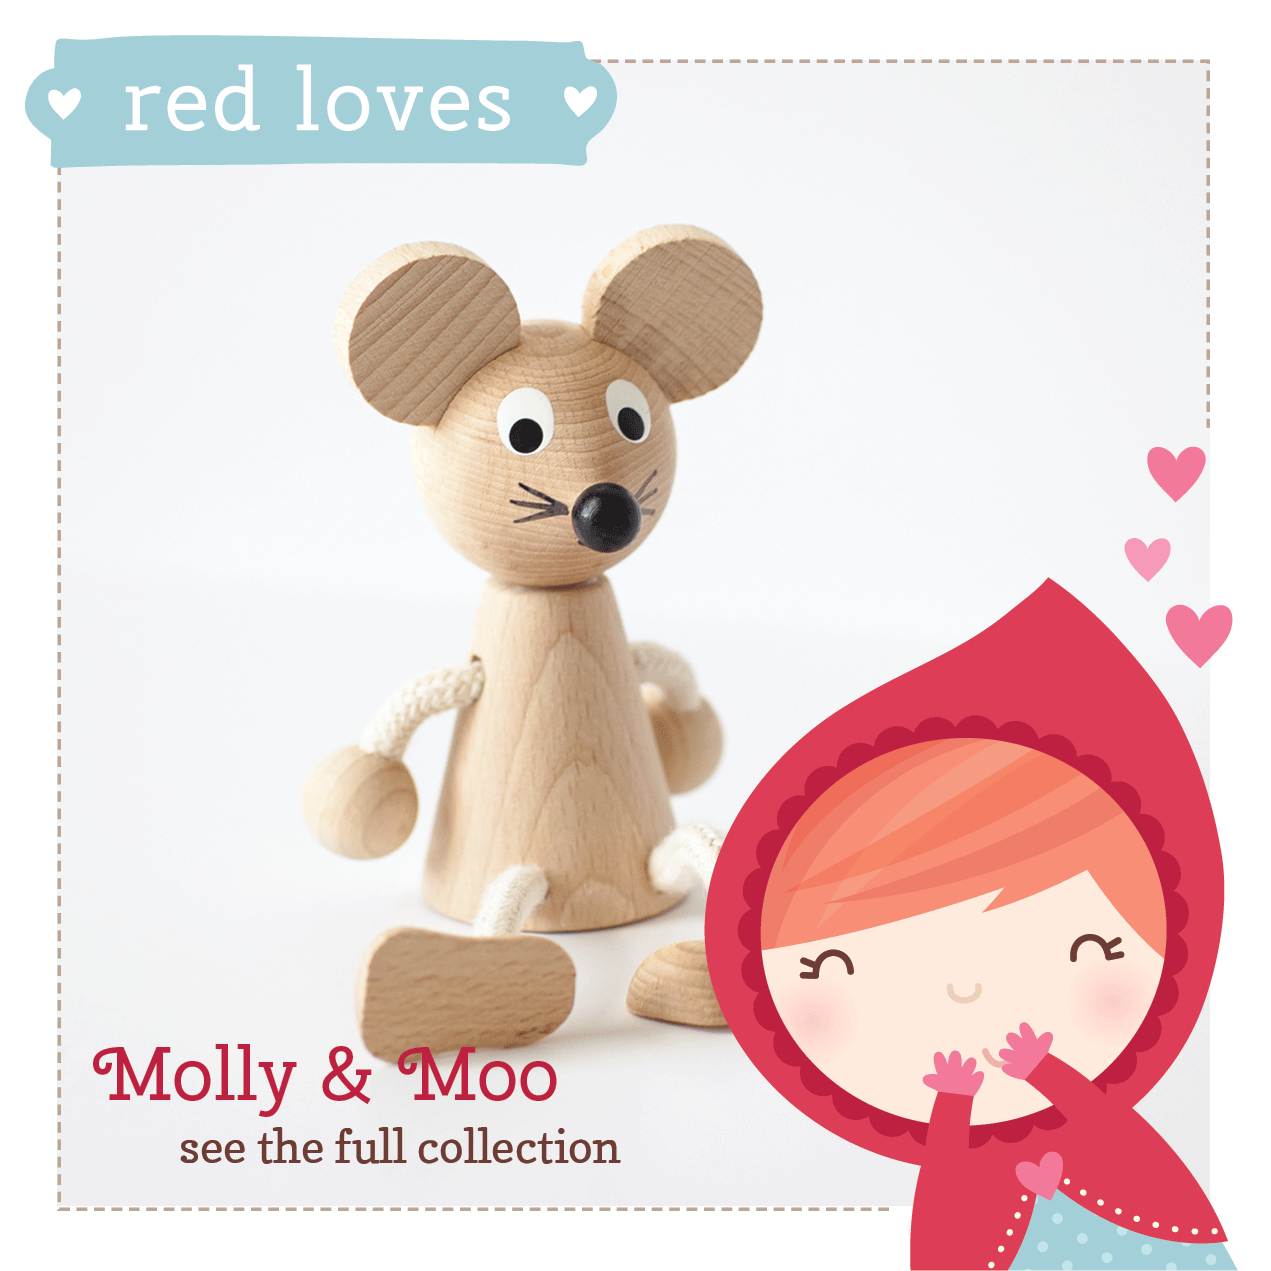 Red loves Molly & Moo